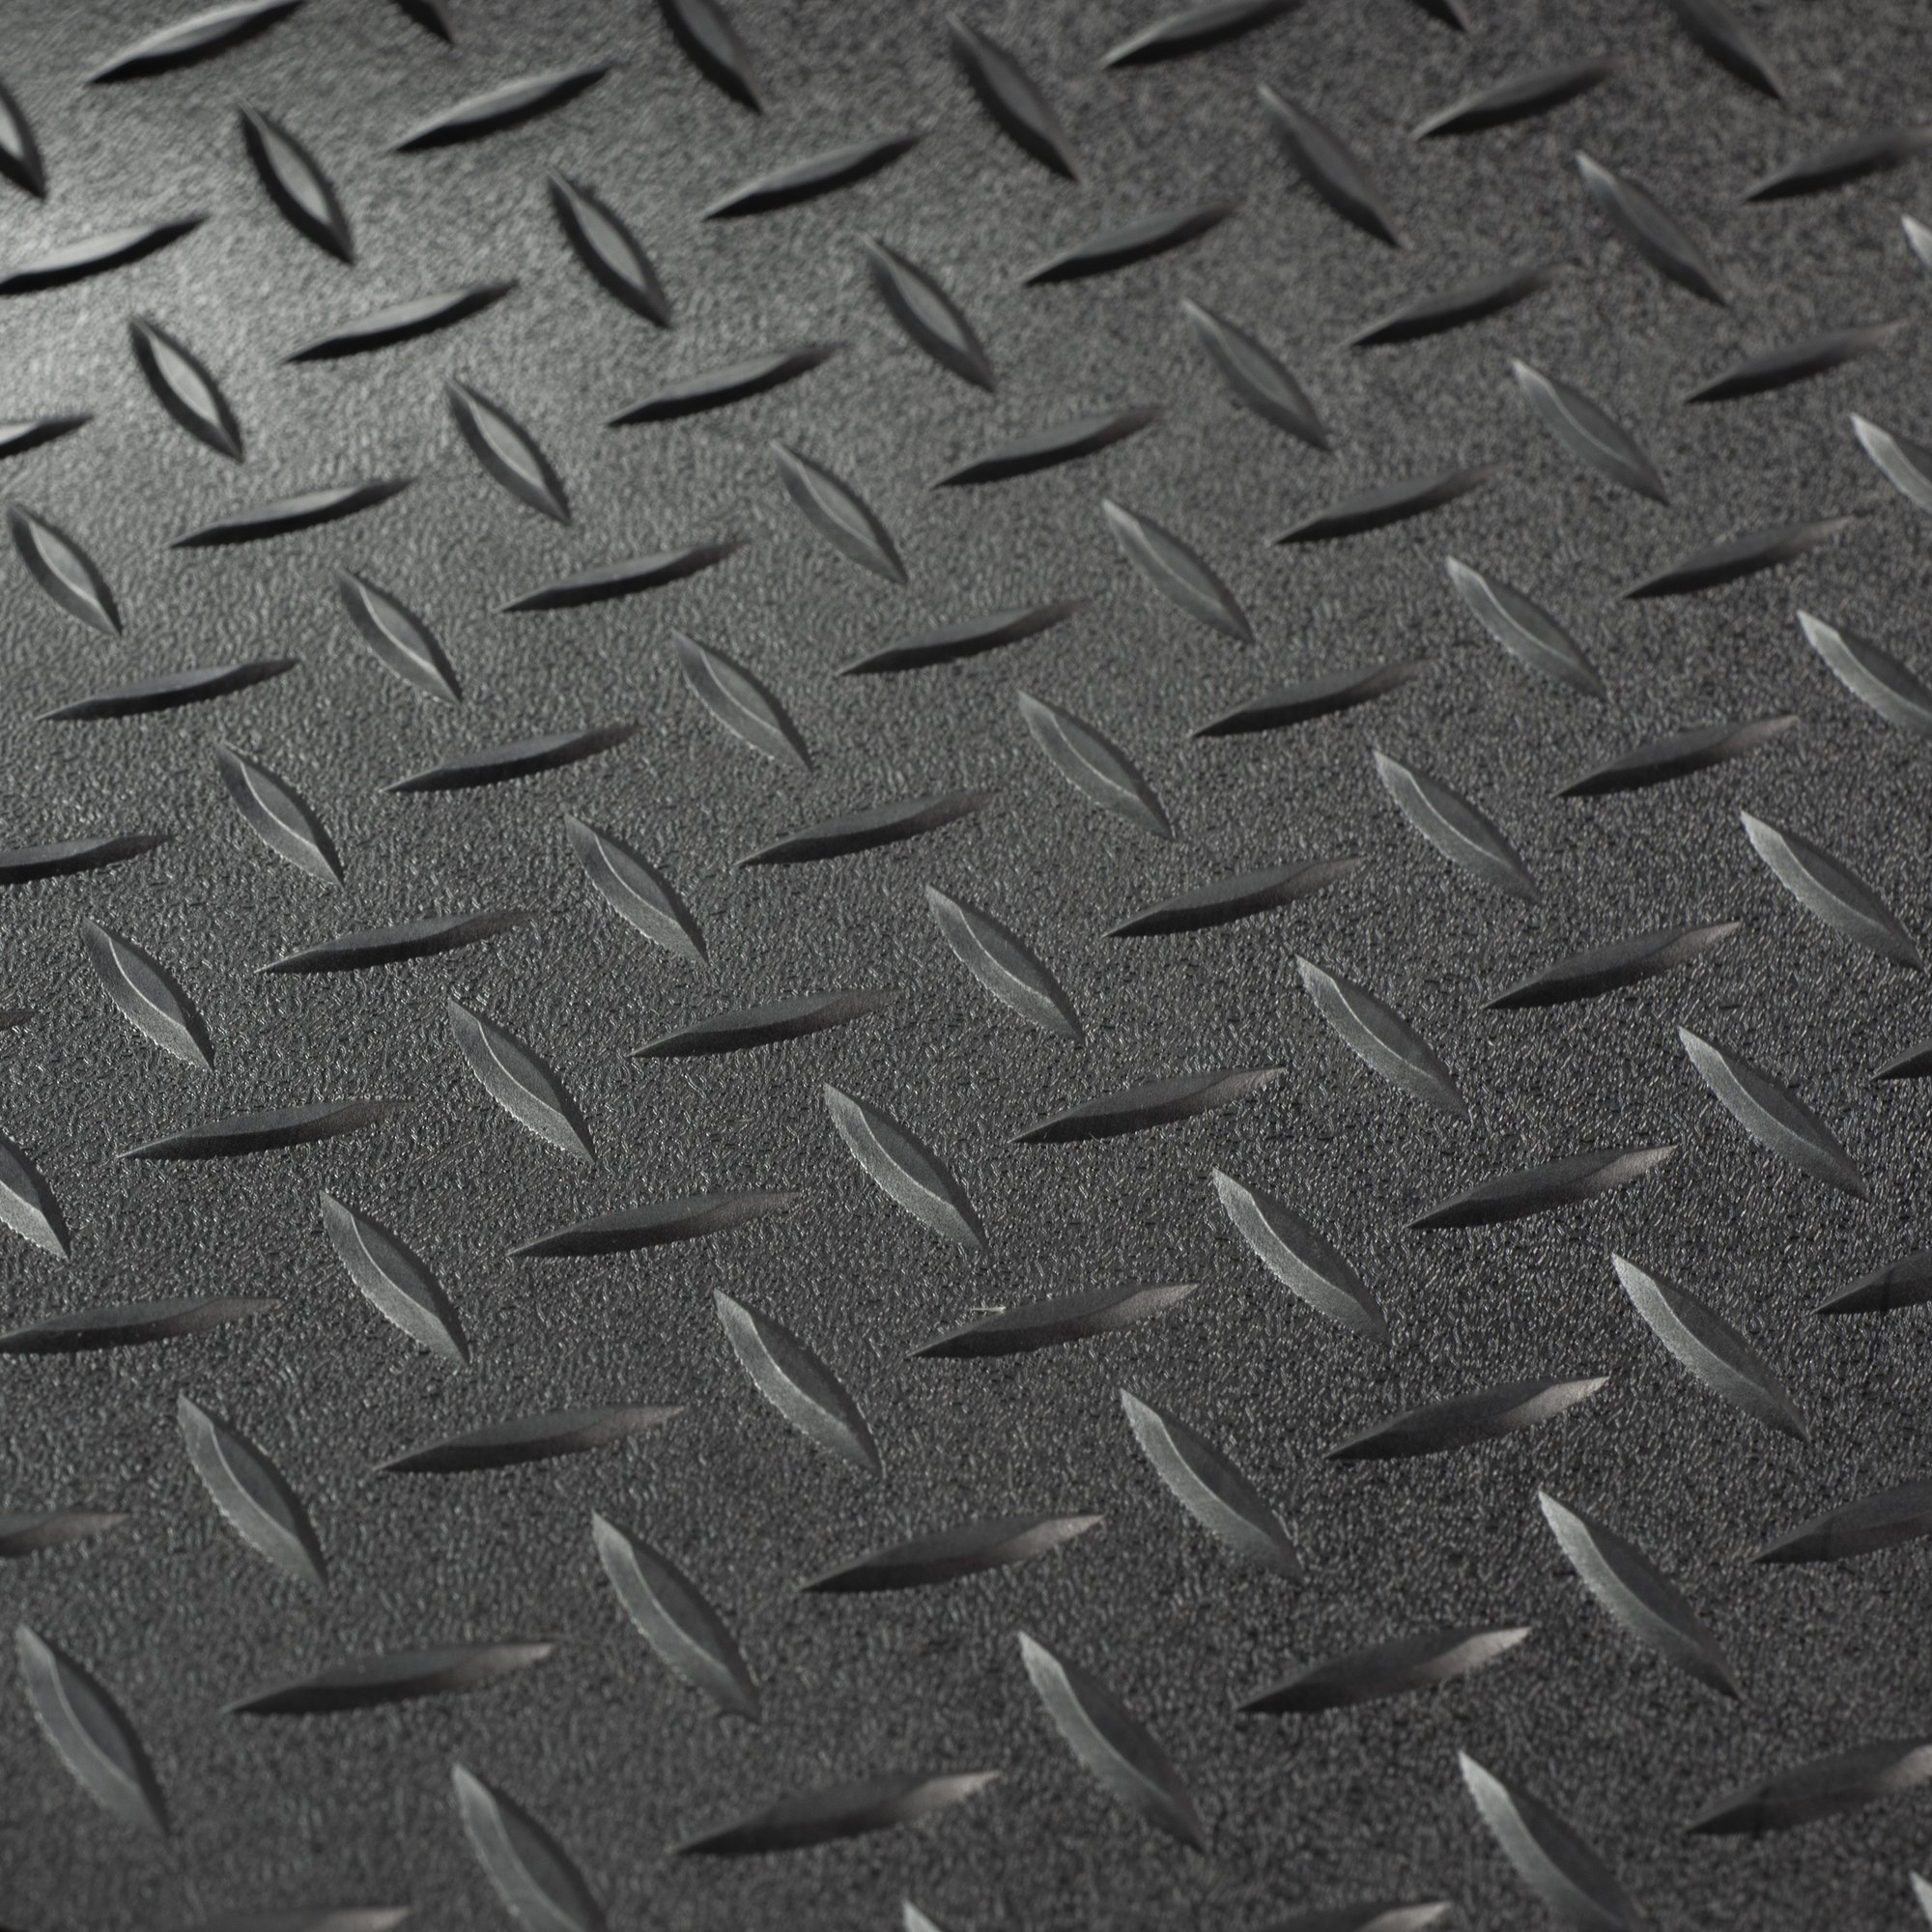 RV Trailer Diamond Plate Pattern Flooring | Black | 8' 2'' Wide | Rubber Flooring | Garage Flooring | Gym Flooring | Toy Hauler Flooring | Car Show Trailer Flooring (Black, 15') by RecPro (Image #1)